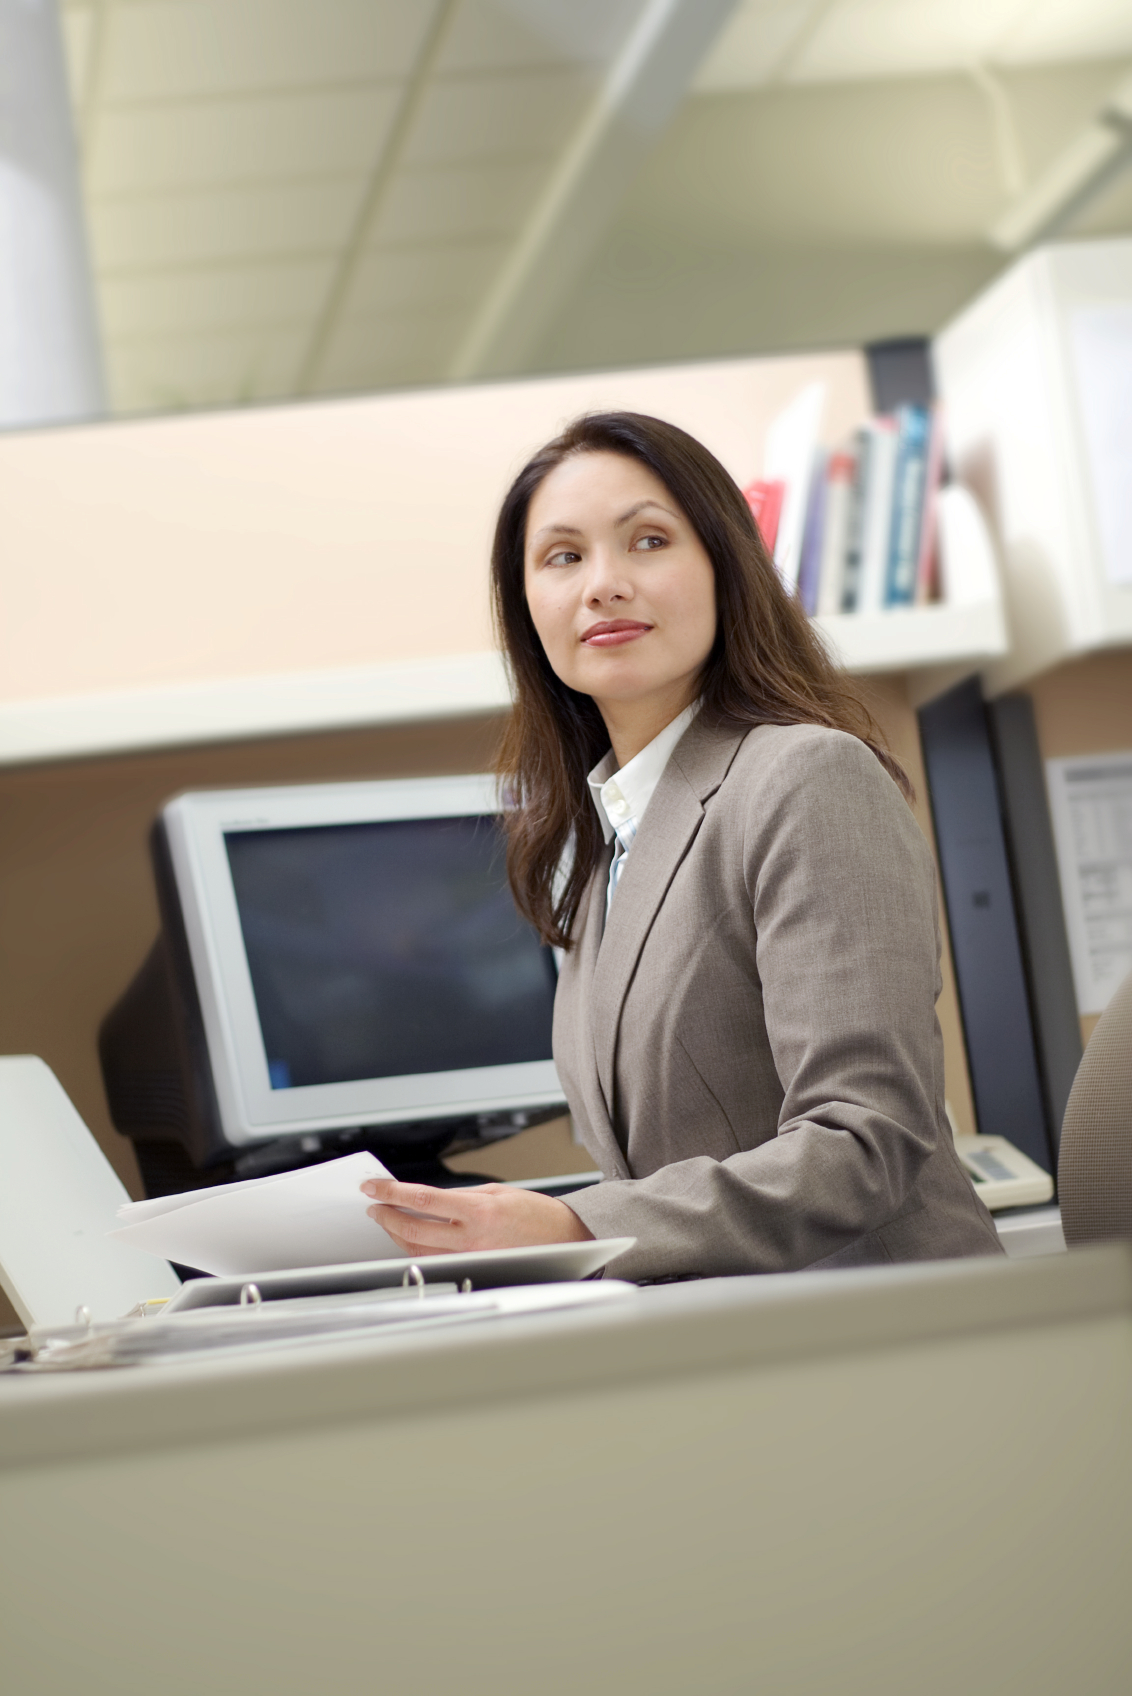 How To Update Your Resume And Cover Letter For A New Job Promotion